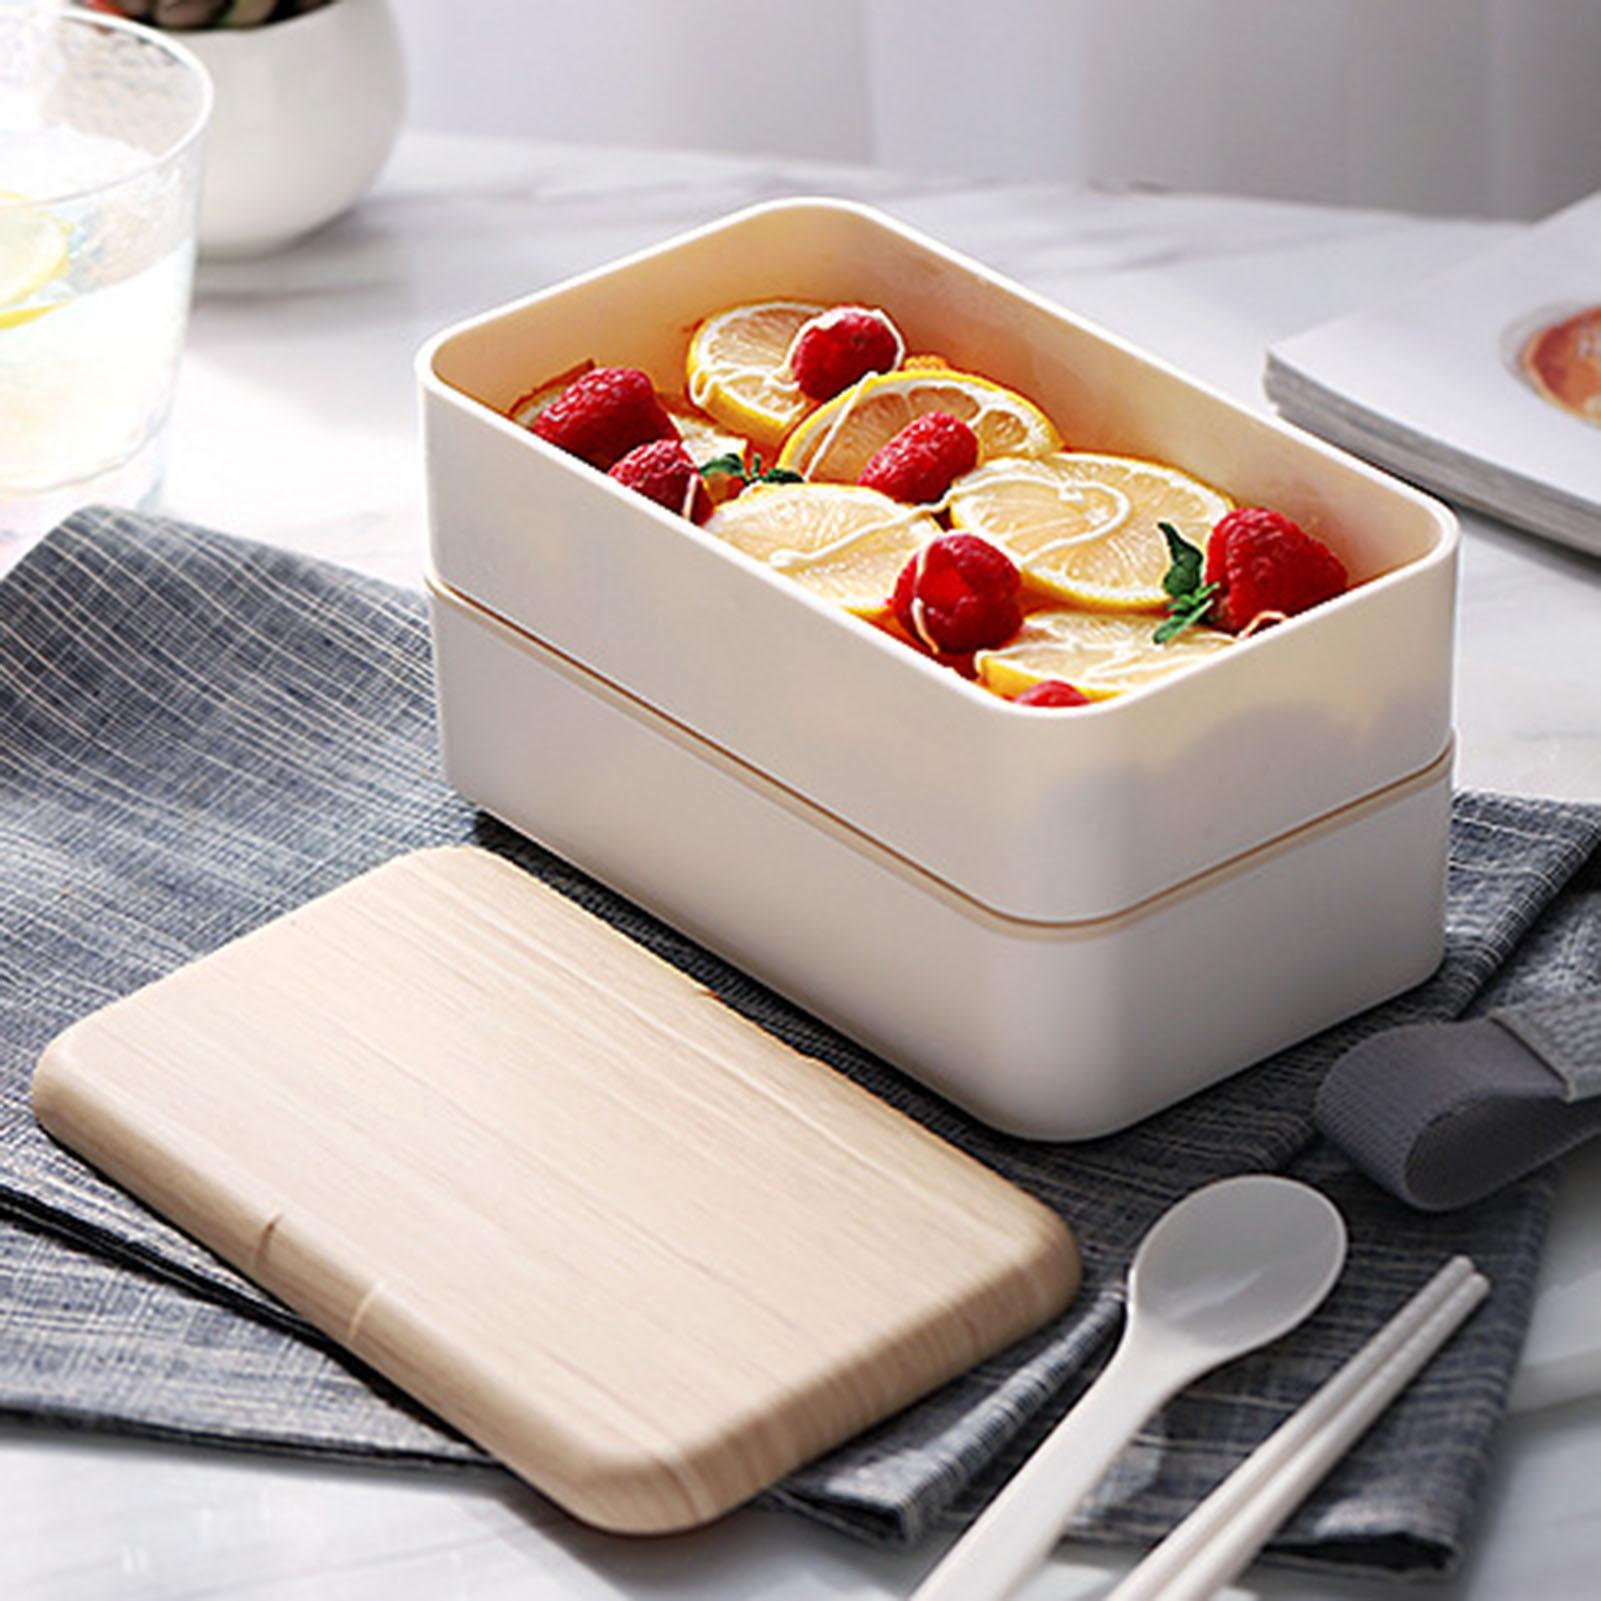 Double Layer Wood Grain Lunch Box Multifunctional Microwave Plastic Lunch Storage Box